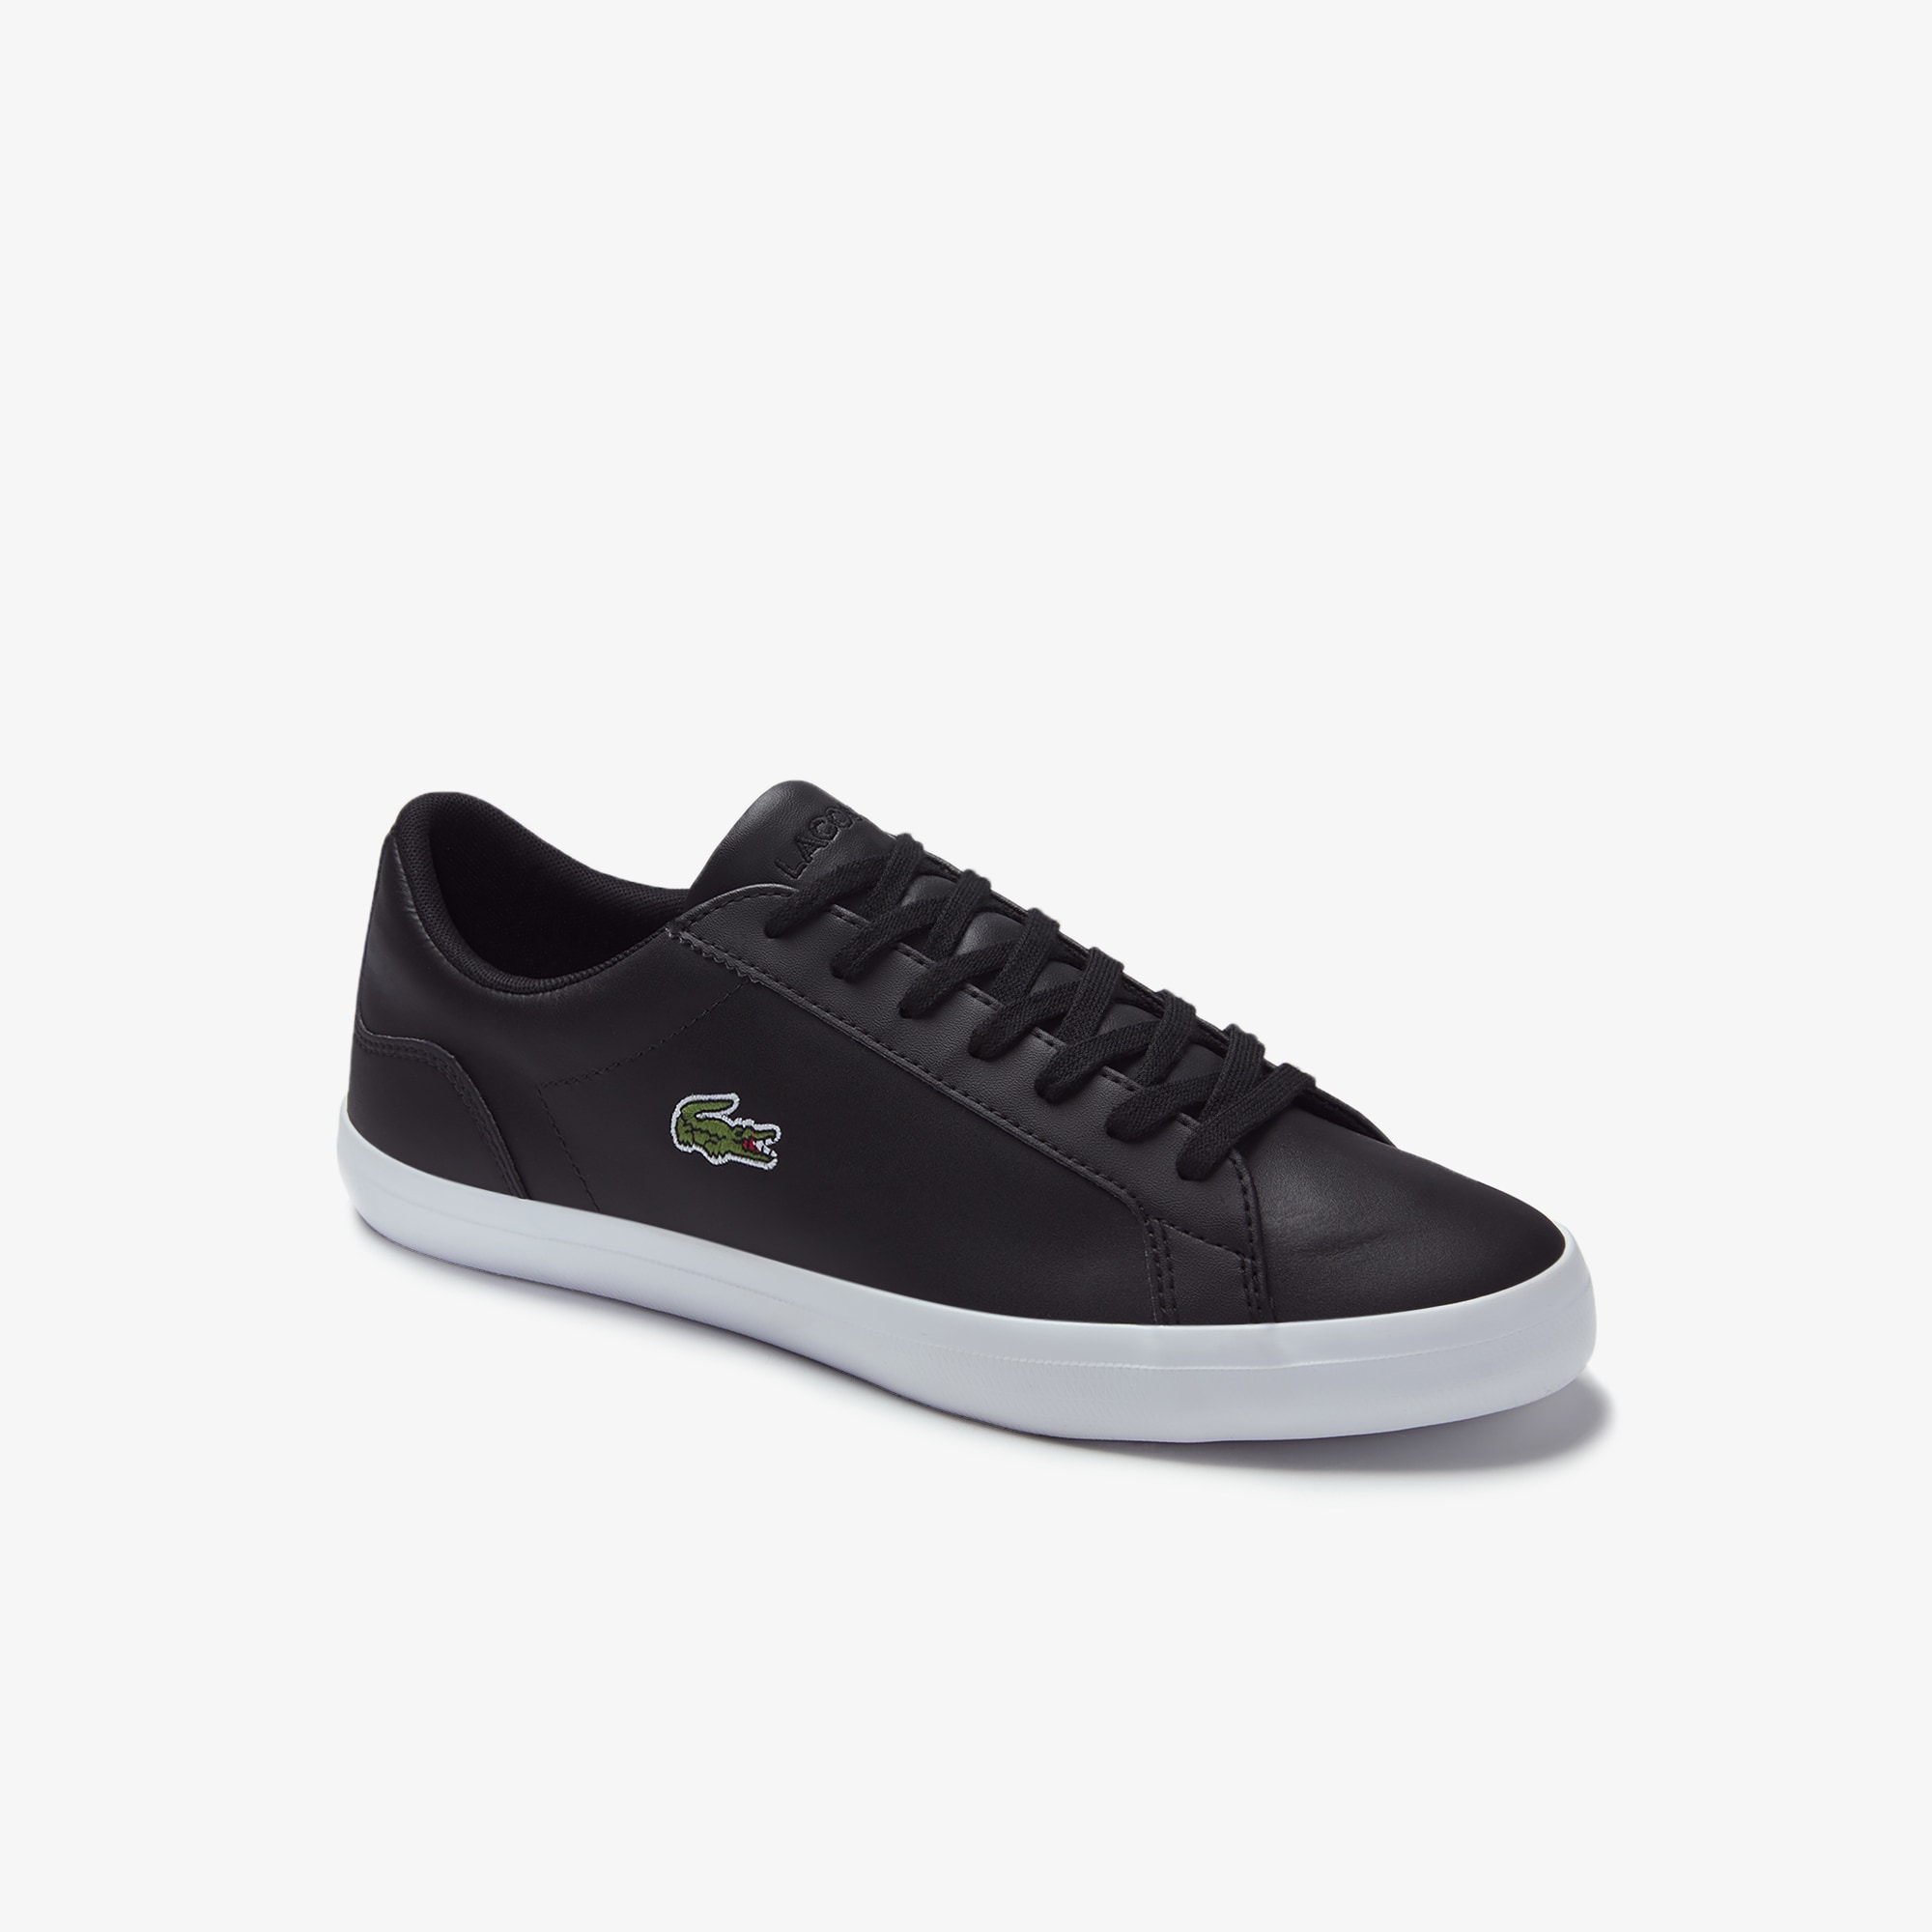 Men's Lerond Monochrome Leather Trainers